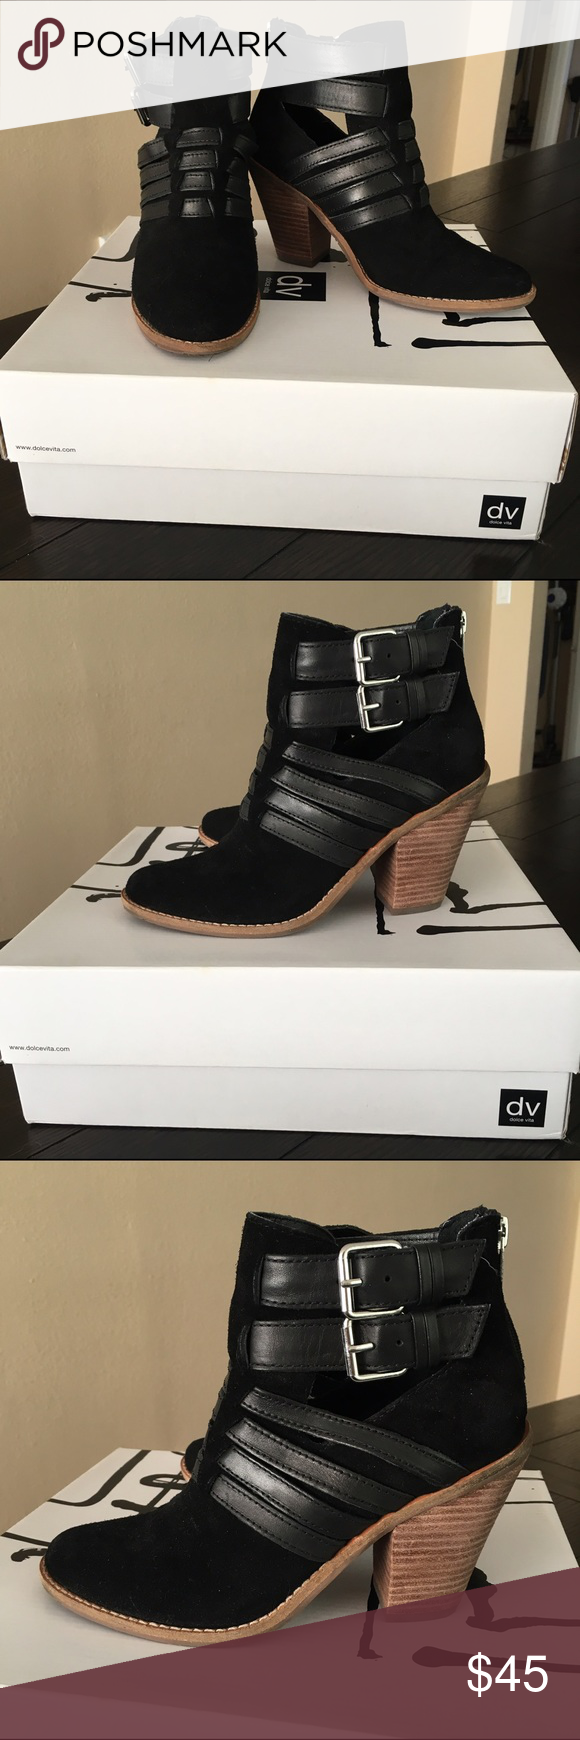 """DV by Dolce Vita Caitlyn Black Suede Ankle Boots Slightly worn, comes with original box. Anthropologie exclusive, worn 3 time but sadly the shoes is too narrow for my wife feet. decibel with pricing. Back Zip Leather Upper synthetic insole. 3.5"""" synthetic heel. No trade DV by Dolce Vita Shoes Ankle Boots & Booties"""